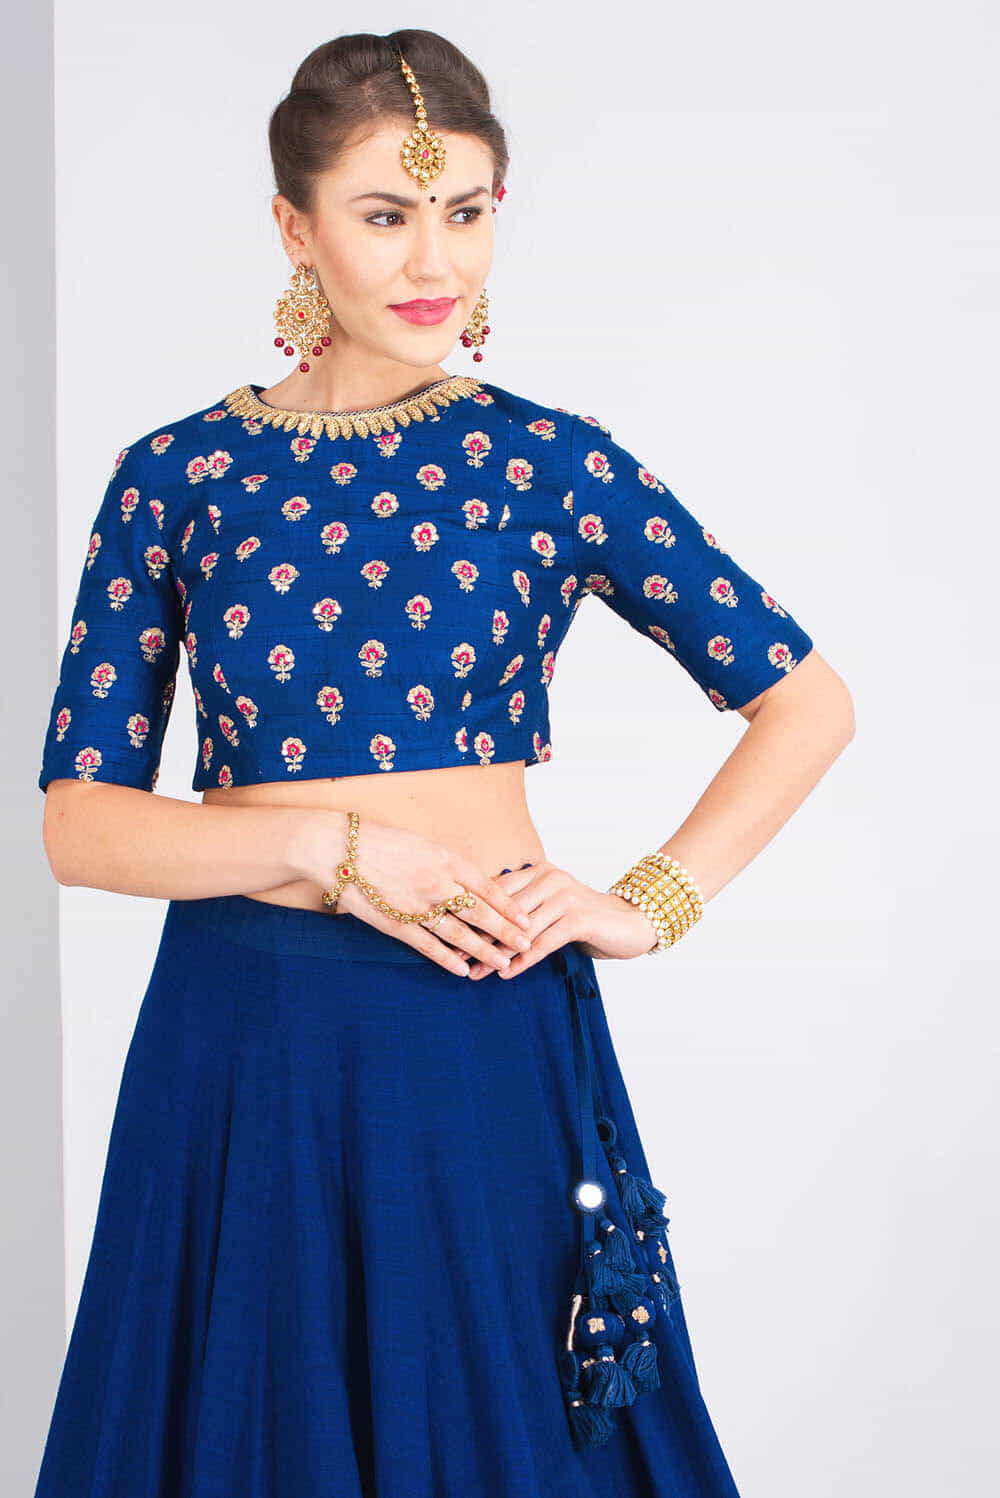 614ce2a30dad9f Royal Blue Blouse For Wedding | Toffee Art